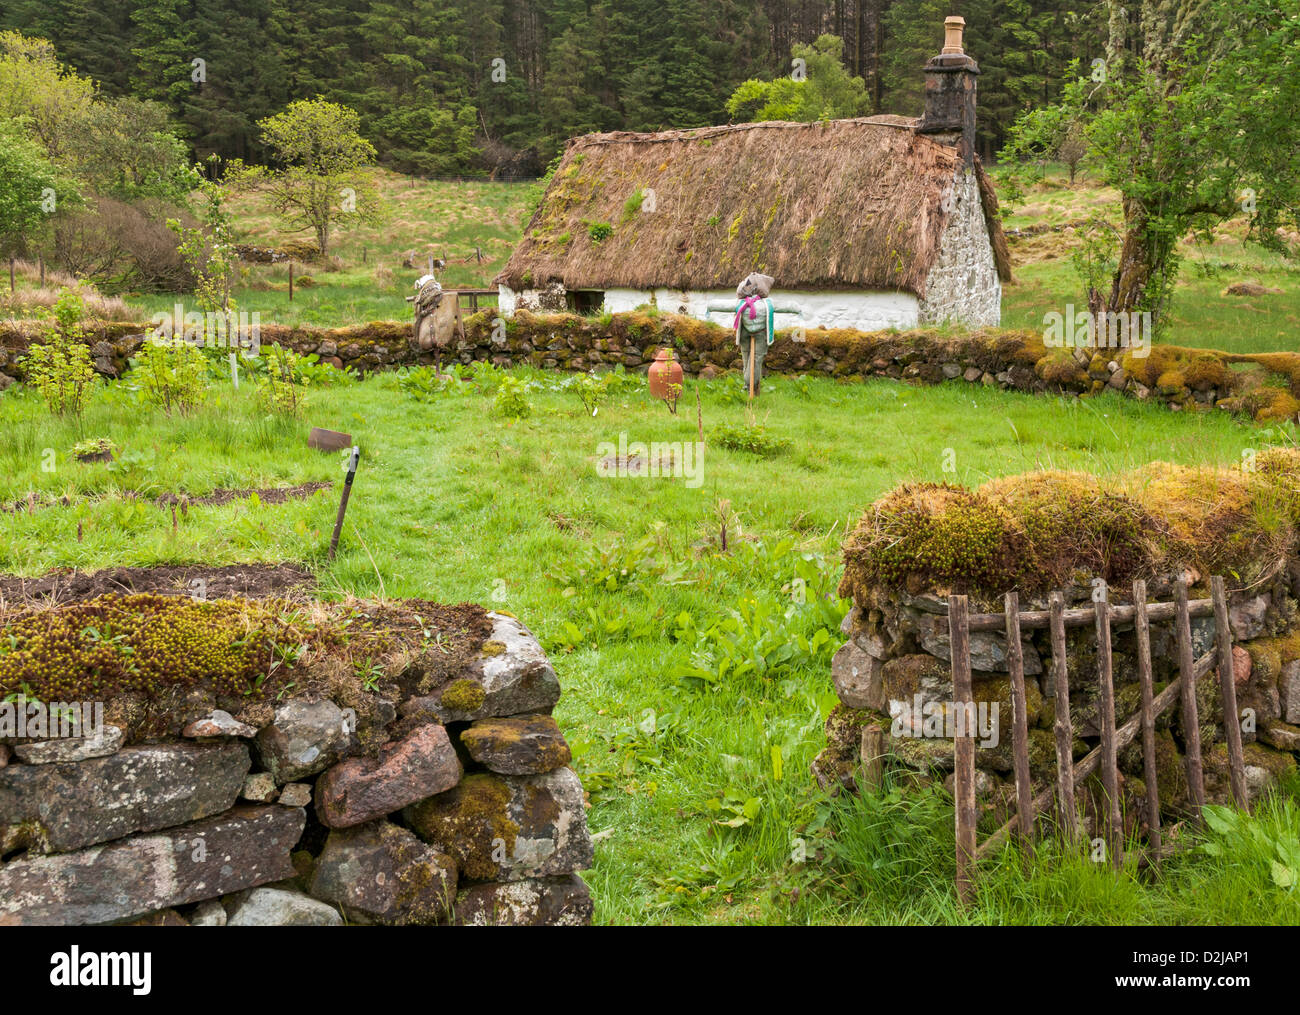 Scotland, Auchindrain Township Open Air Museum - Stock Image